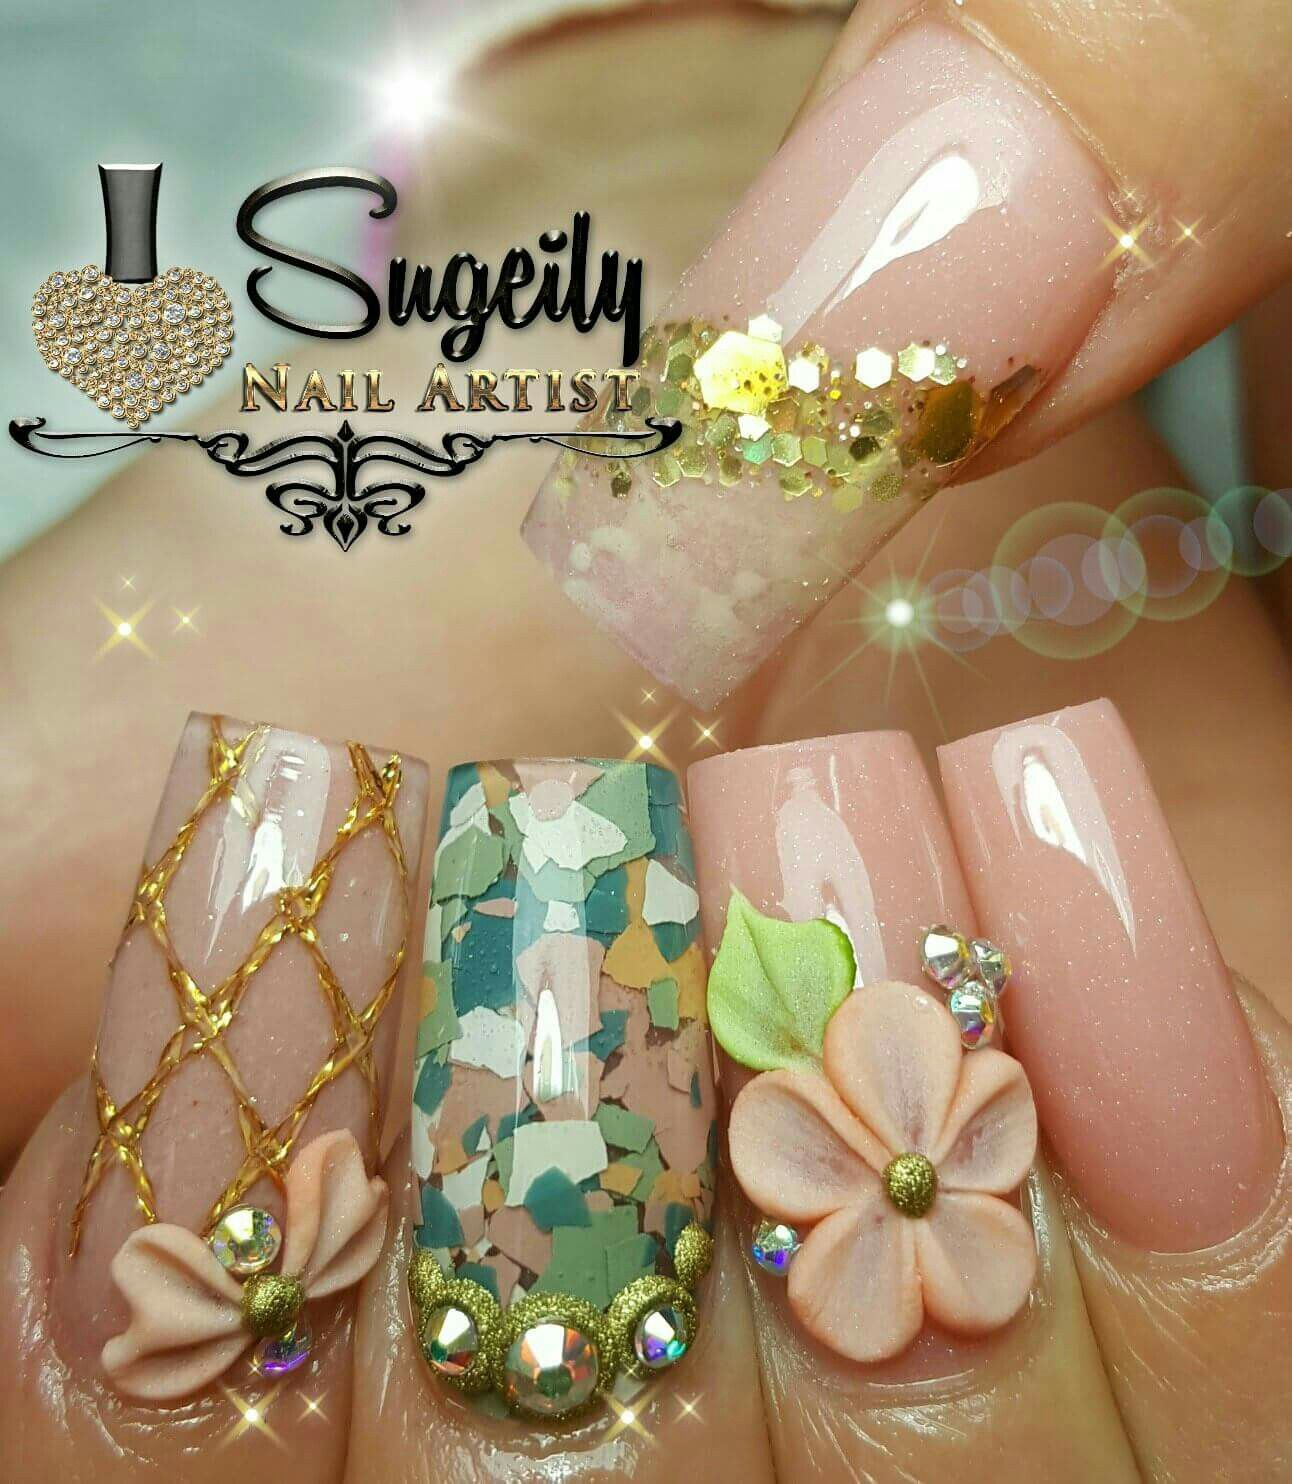 CONFETTI! So liking this nail art with confetti and 3d flowers ...